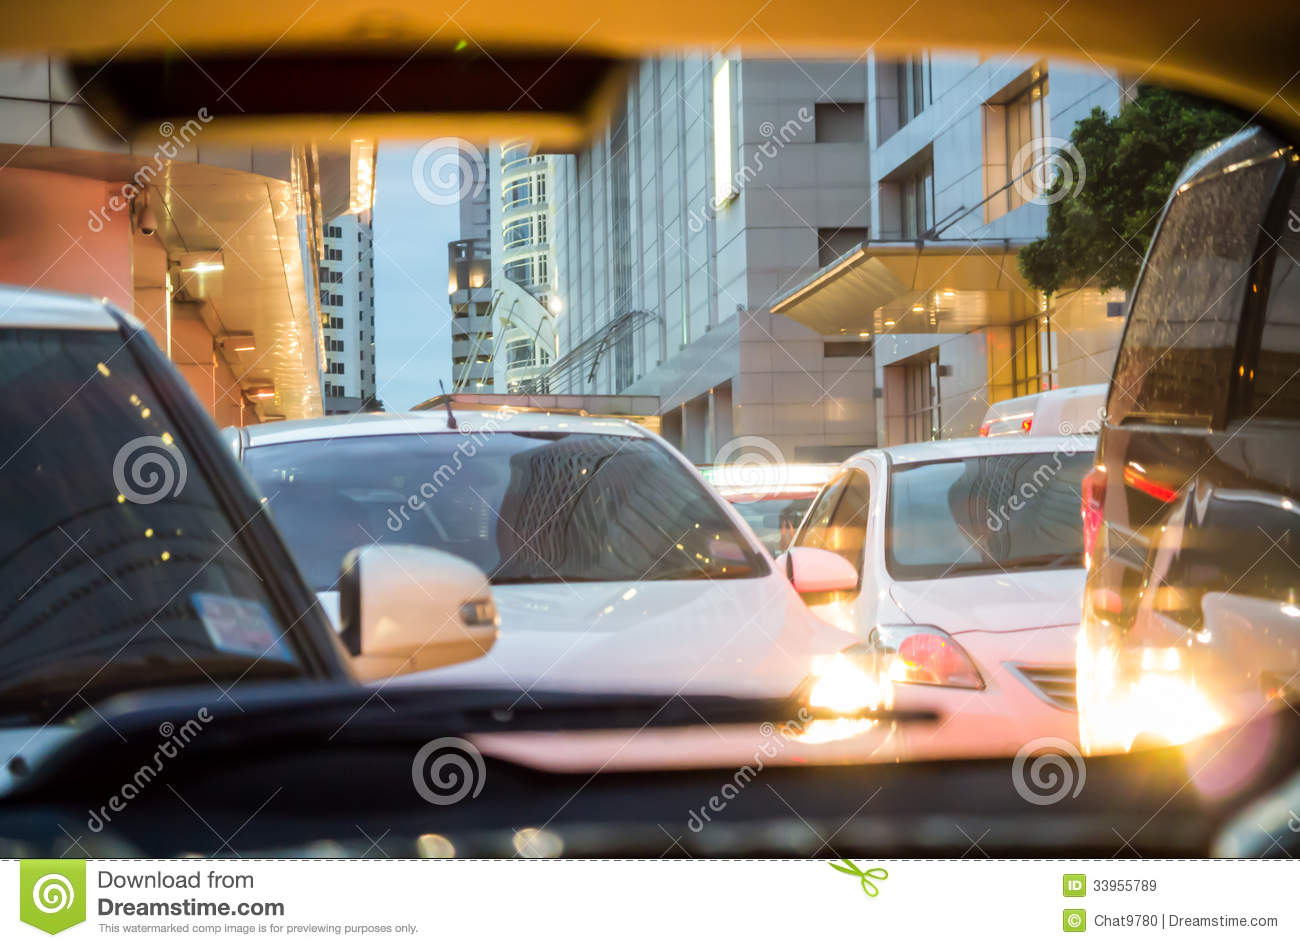 Fotos De Stock Chat9780: Crowded Car In The Evening Royalty Free Stock Images